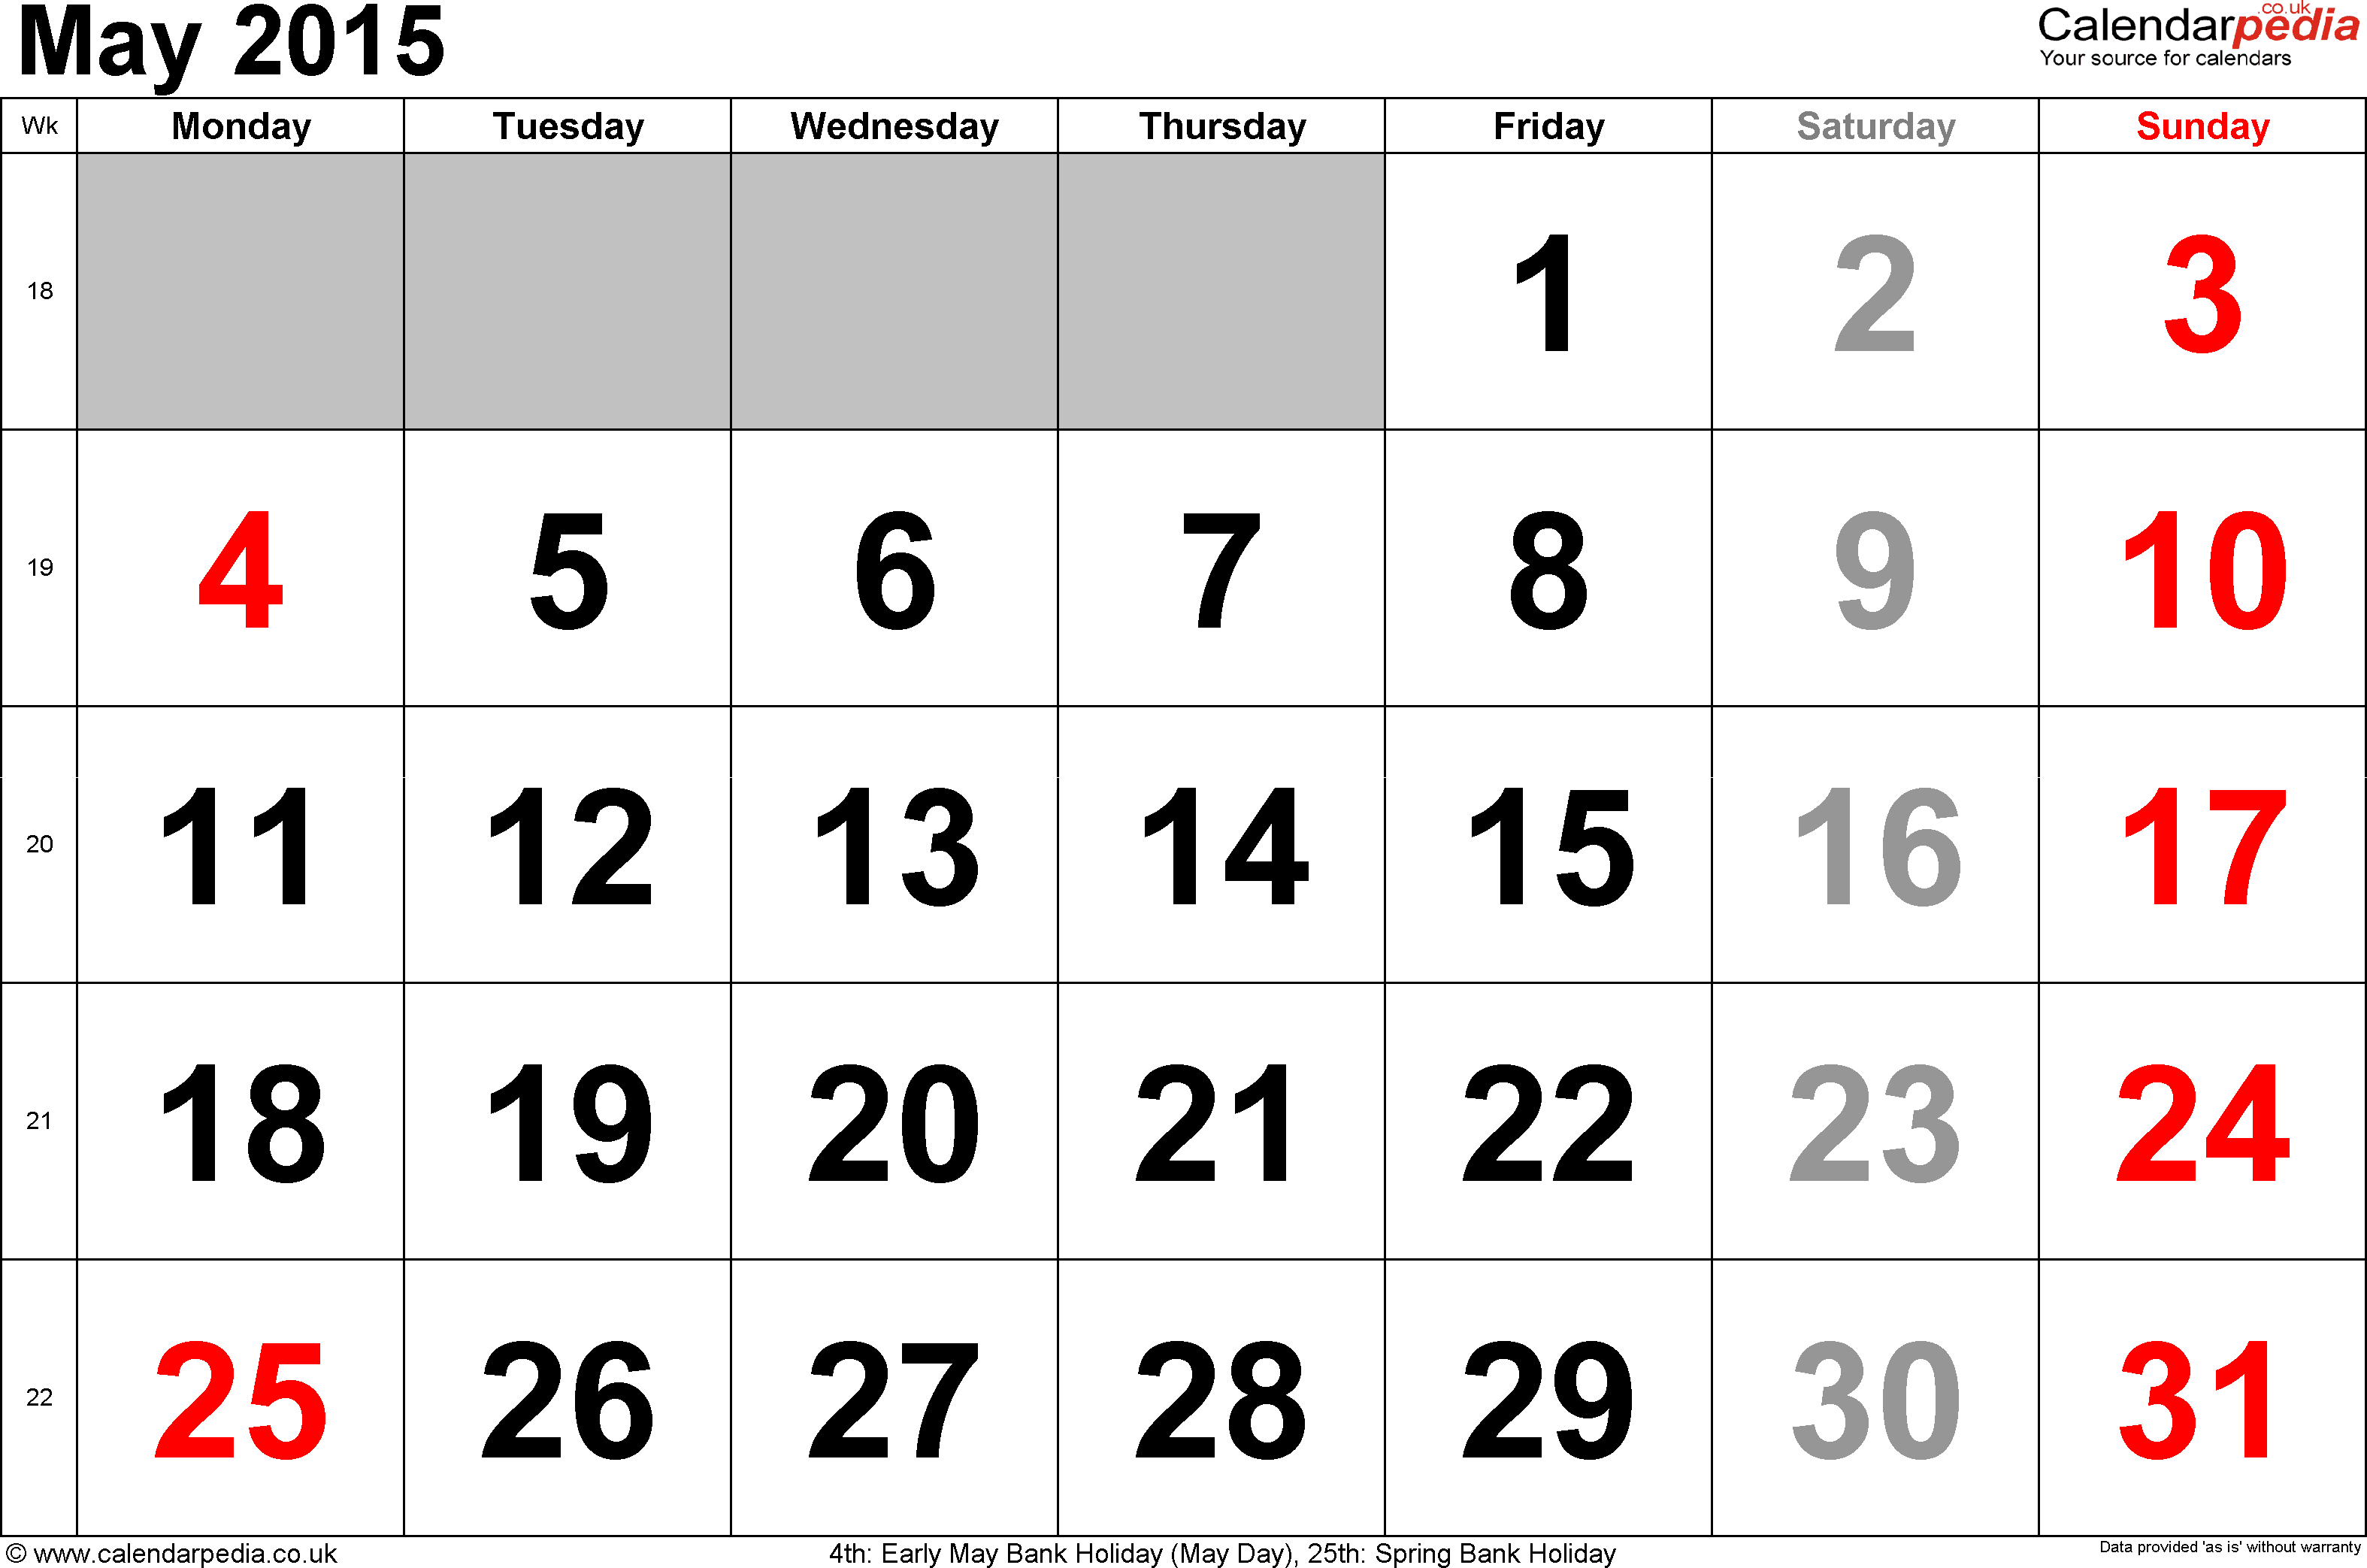 Calendar May 2015, landscape orientation, large numerals, 1 page, with UK bank holidays and week numbers